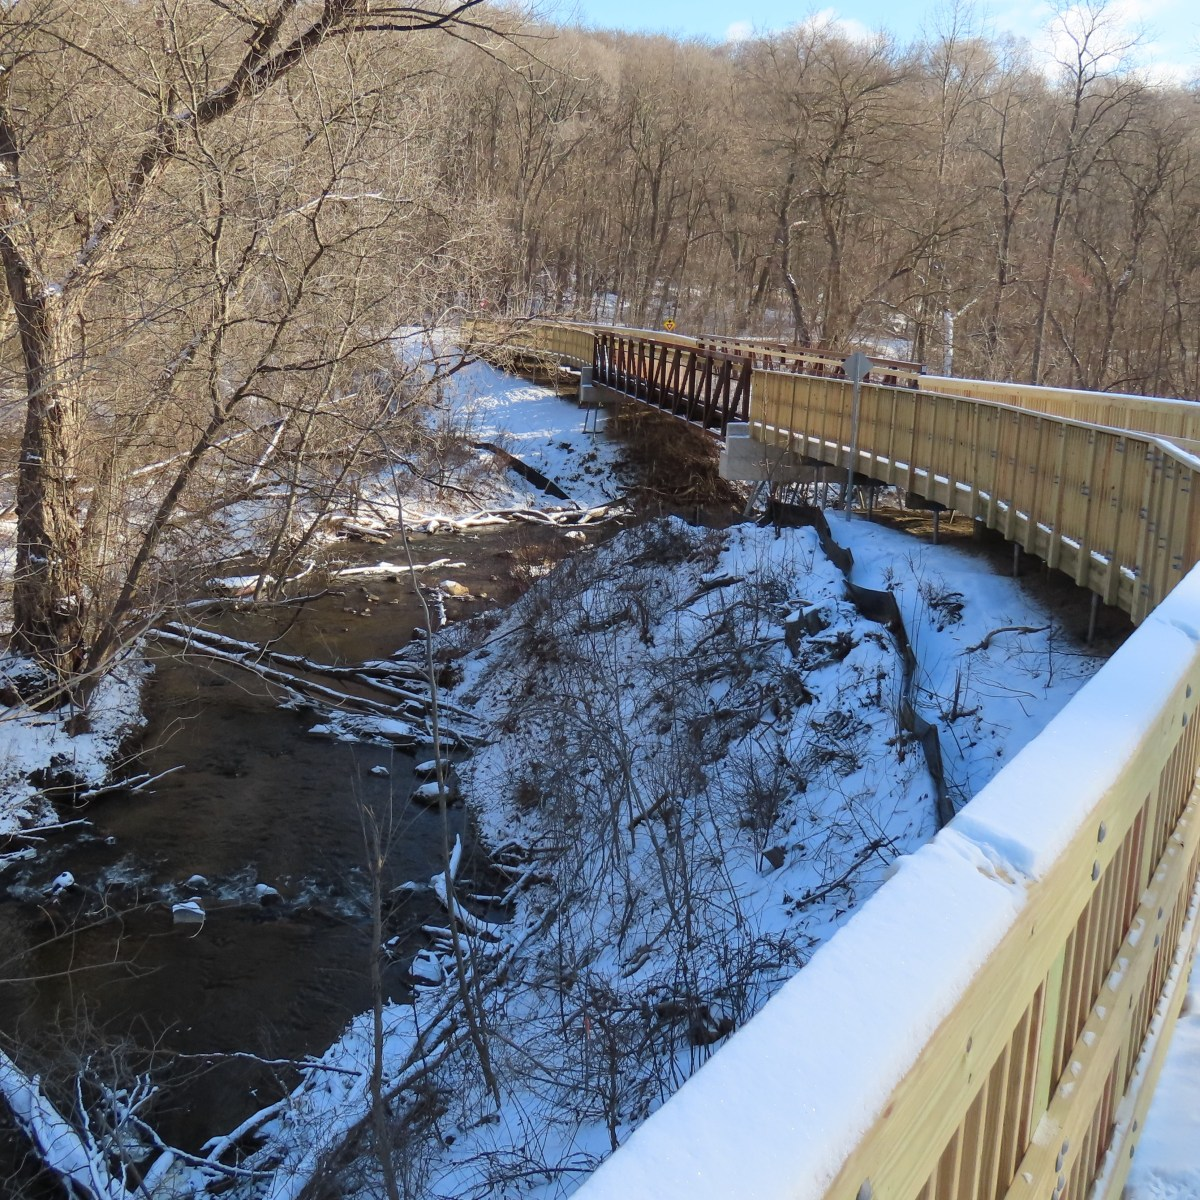 A snow covered boardwalk leading to a steel bridge over a creek